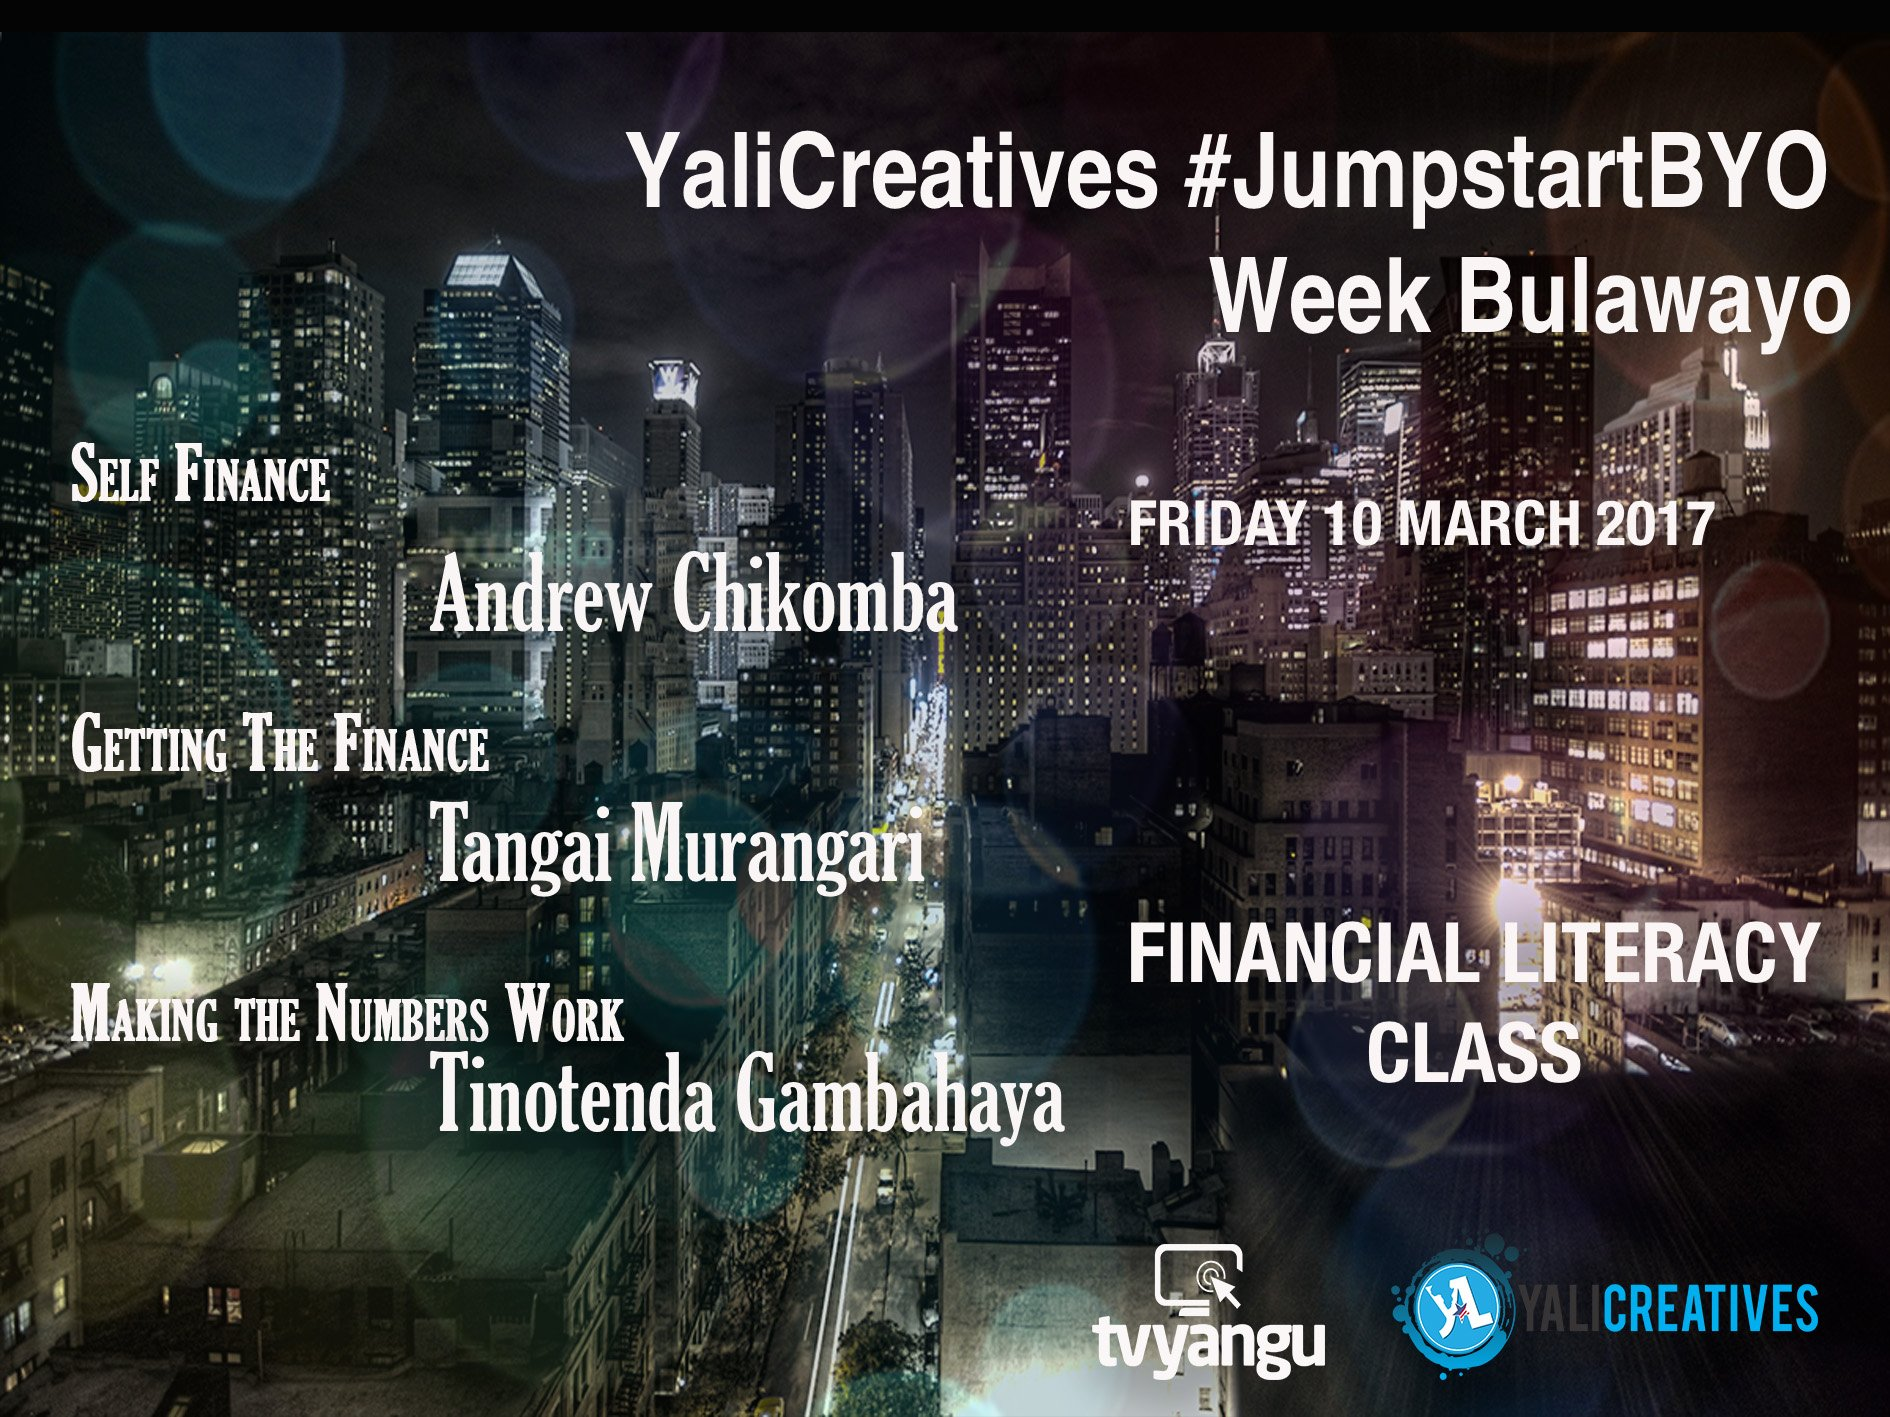 Today is the last day of #Jumpstartbyo @YaliCreatives #financialliteracy DM to be part of the class https://t.co/q4dMiJSxP3